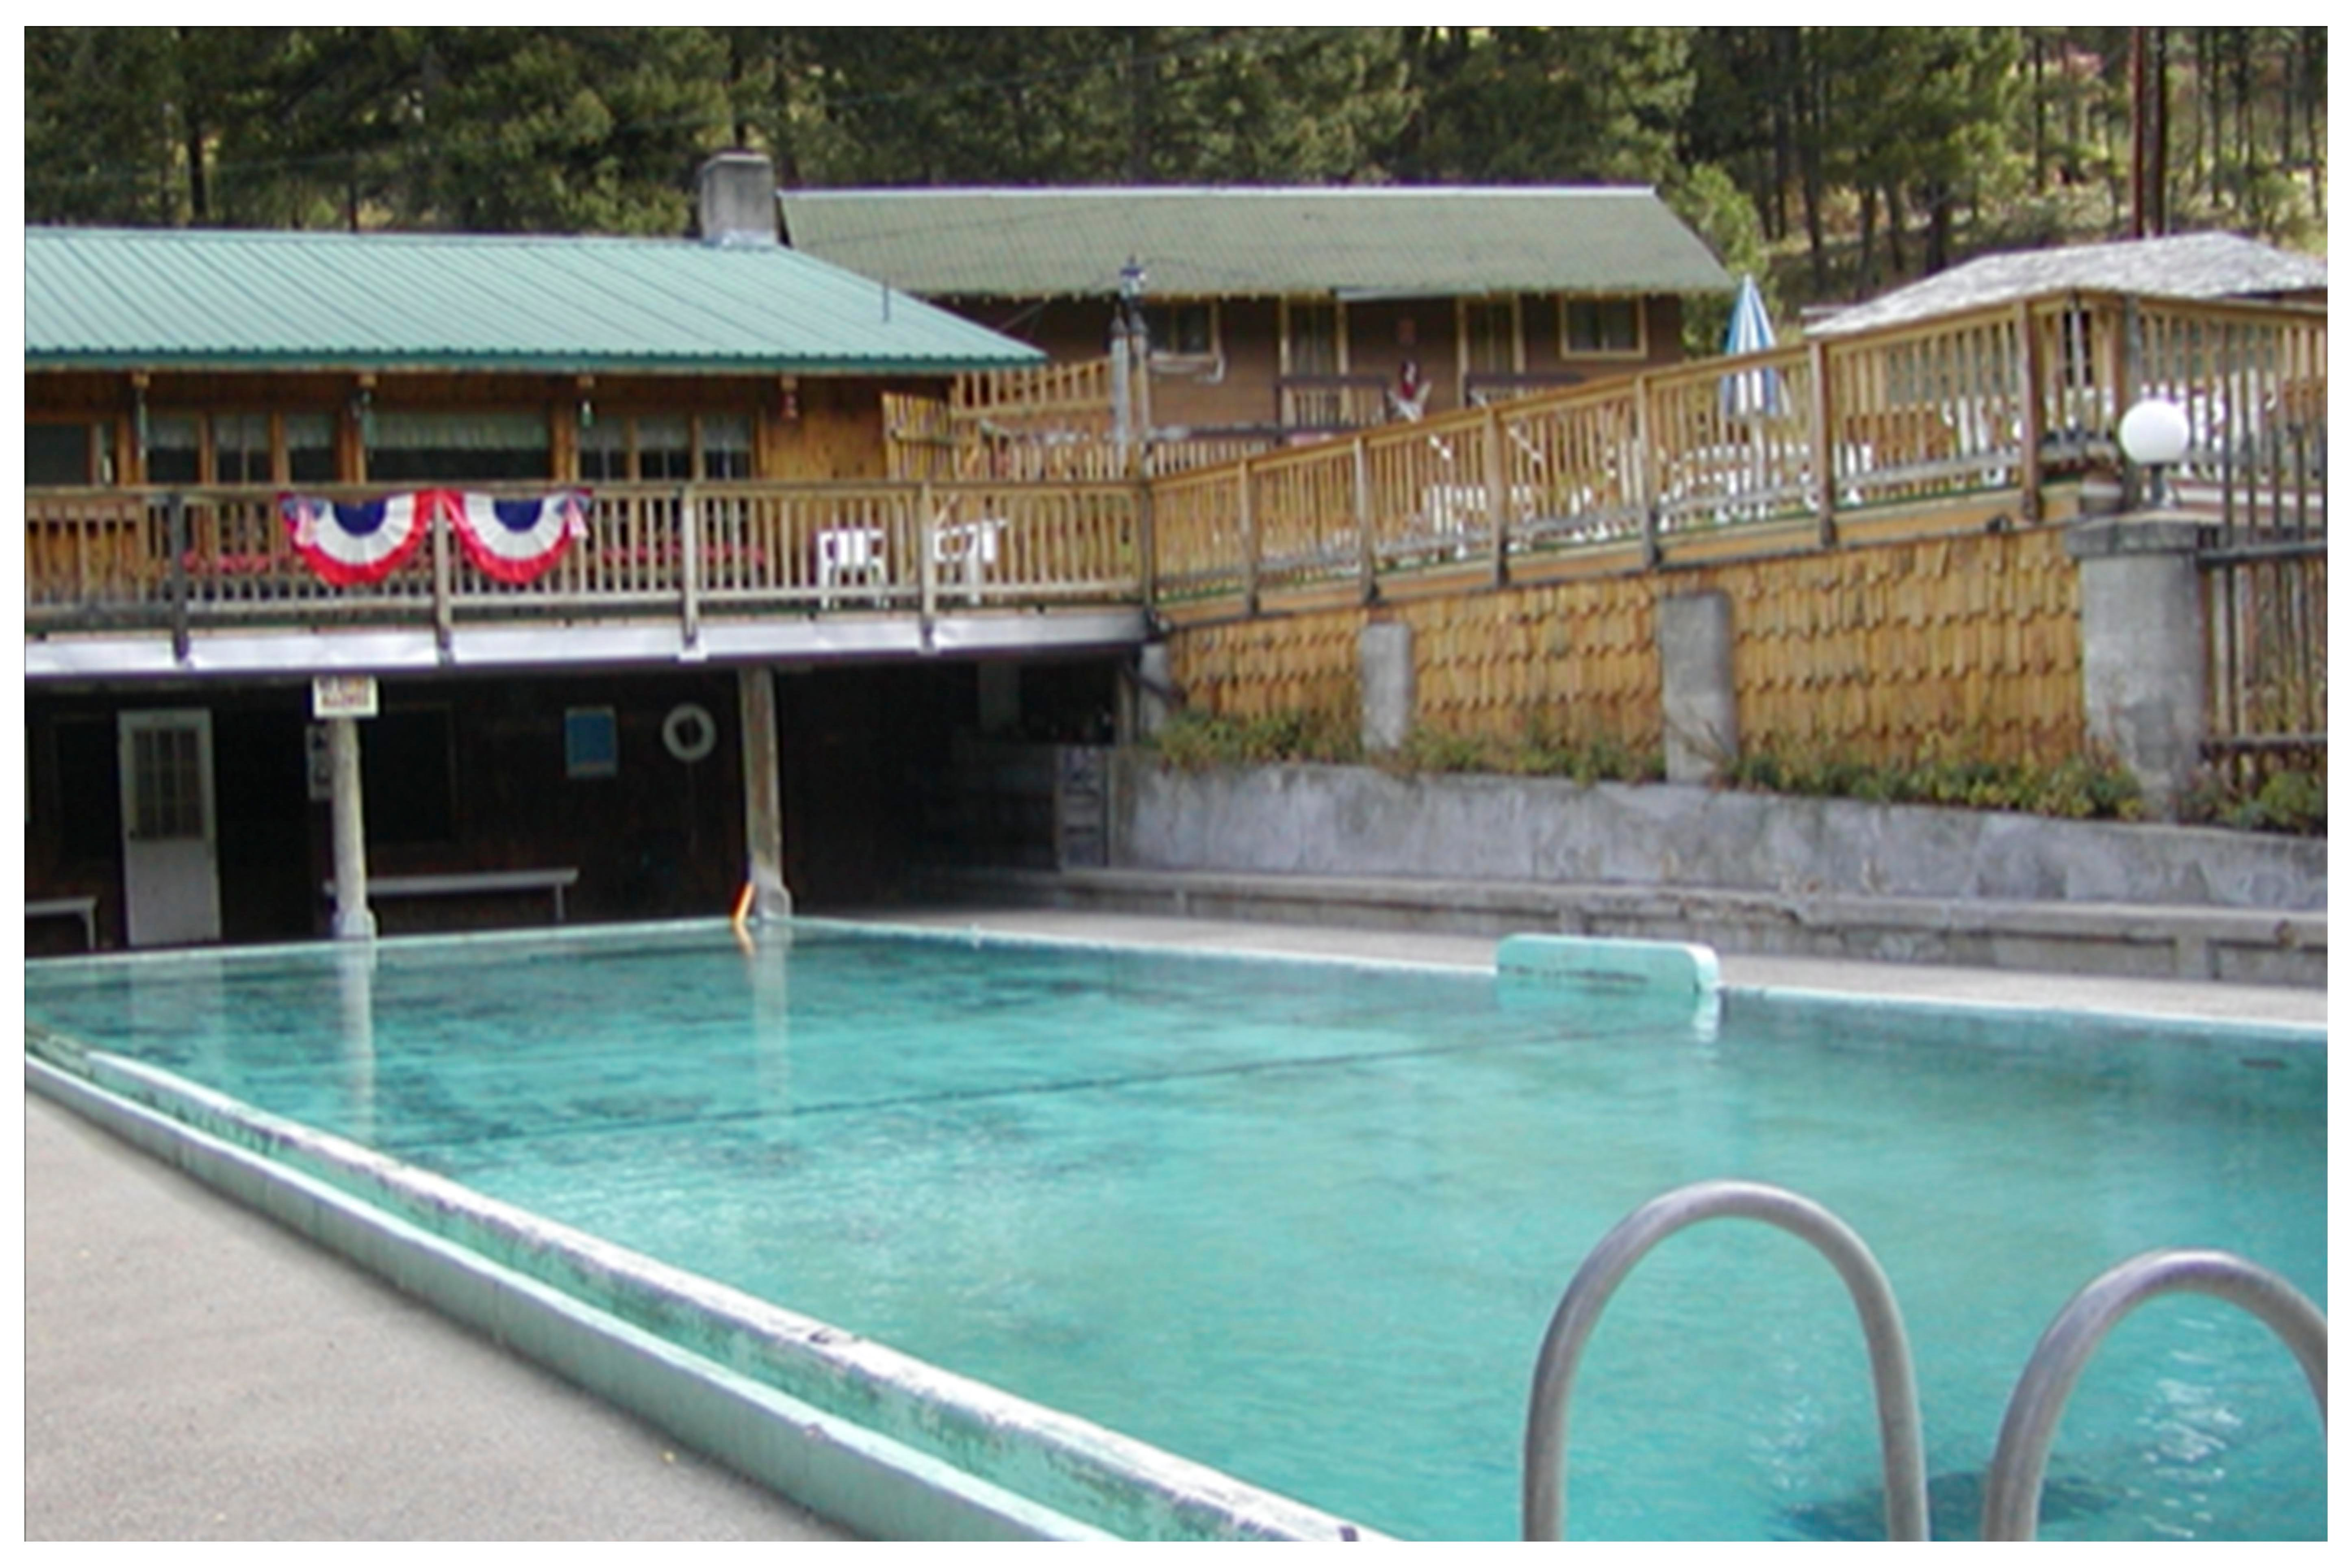 CVB_Hotsprings-2020-11_c